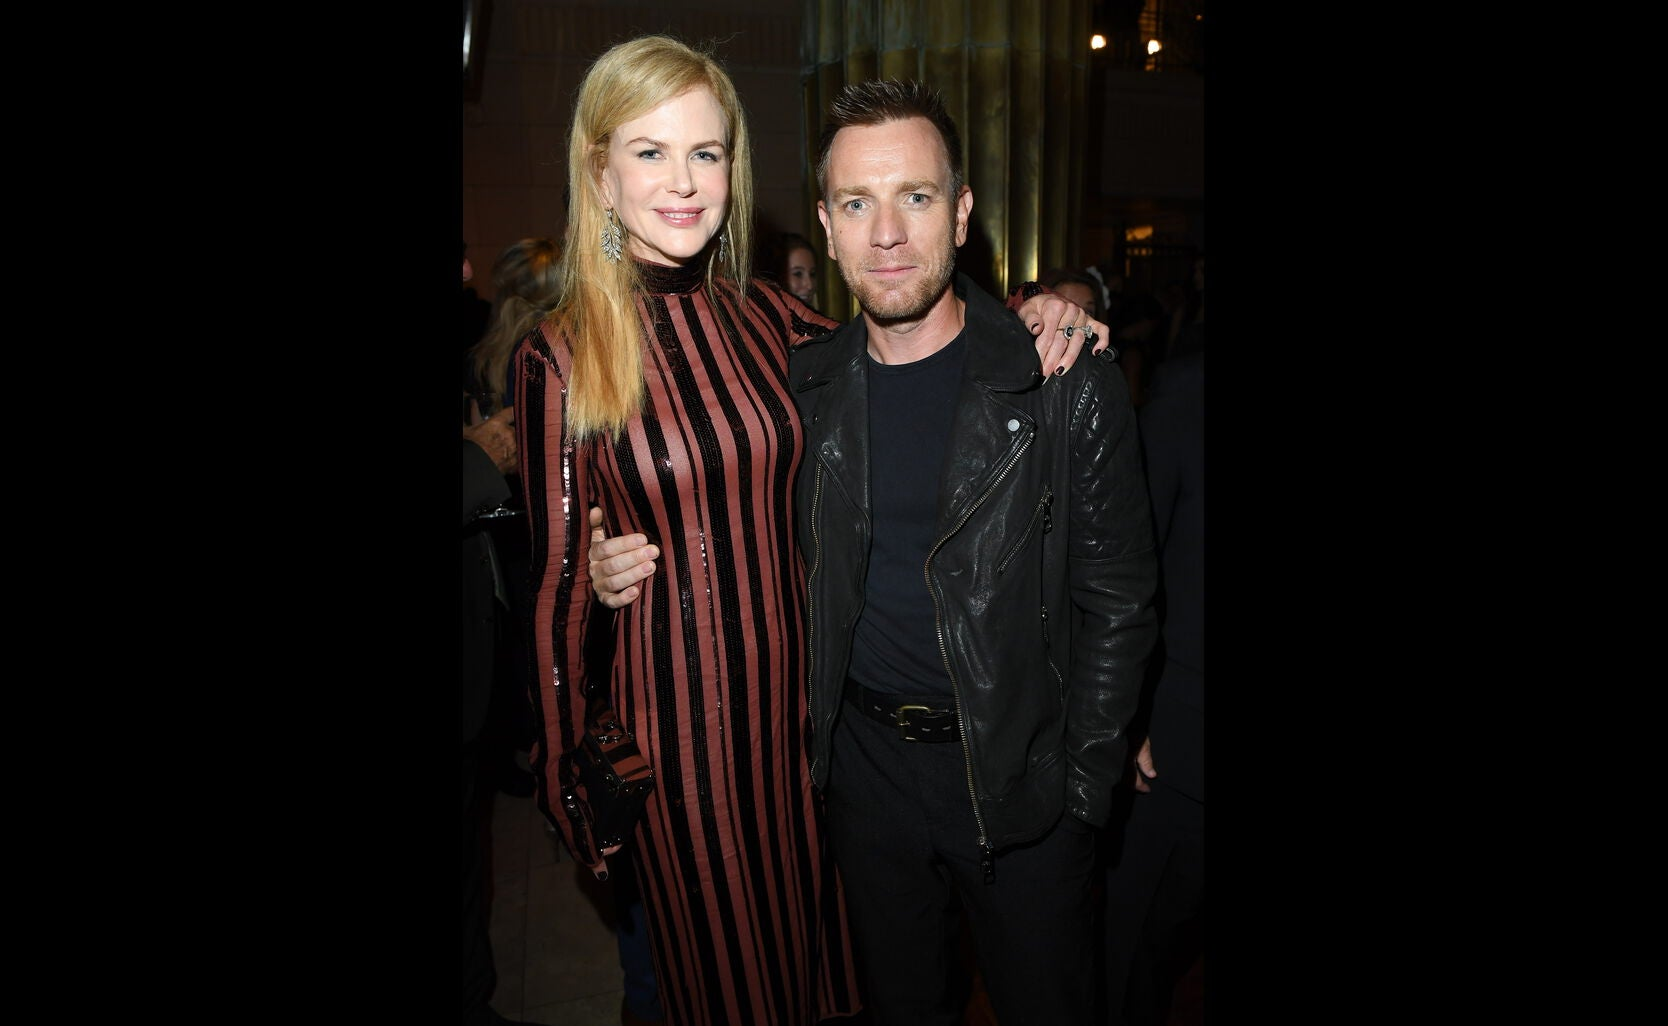 Golden Globe nominee Ewan McGregor and Golden Globe winner Nicole Kidman at the HFPA/InStyle party, Toronto 2016